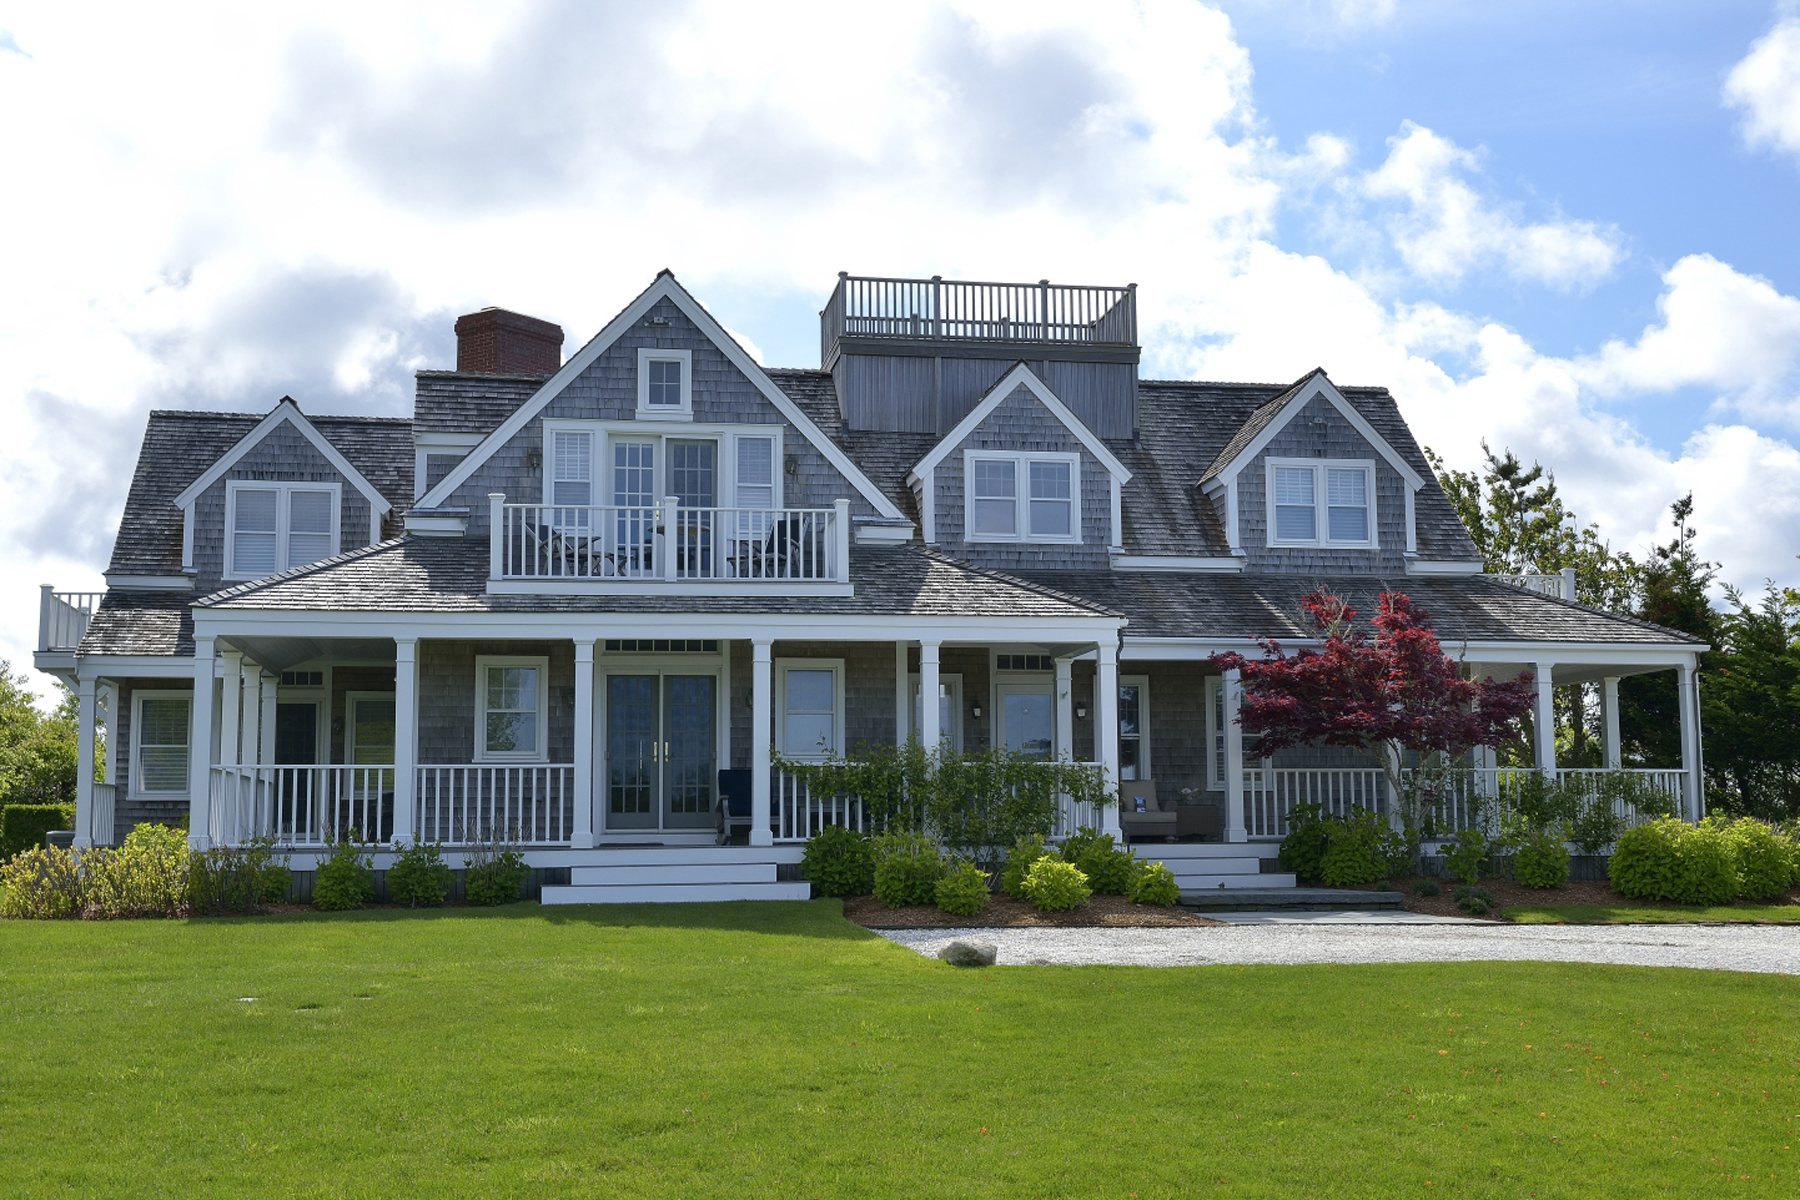 Maison unifamiliale pour l Vente à Exceptional Family Compound and Gorgeous Ocean Views 60 Squam Road Nantucket, Massachusetts, 02554 États-Unis